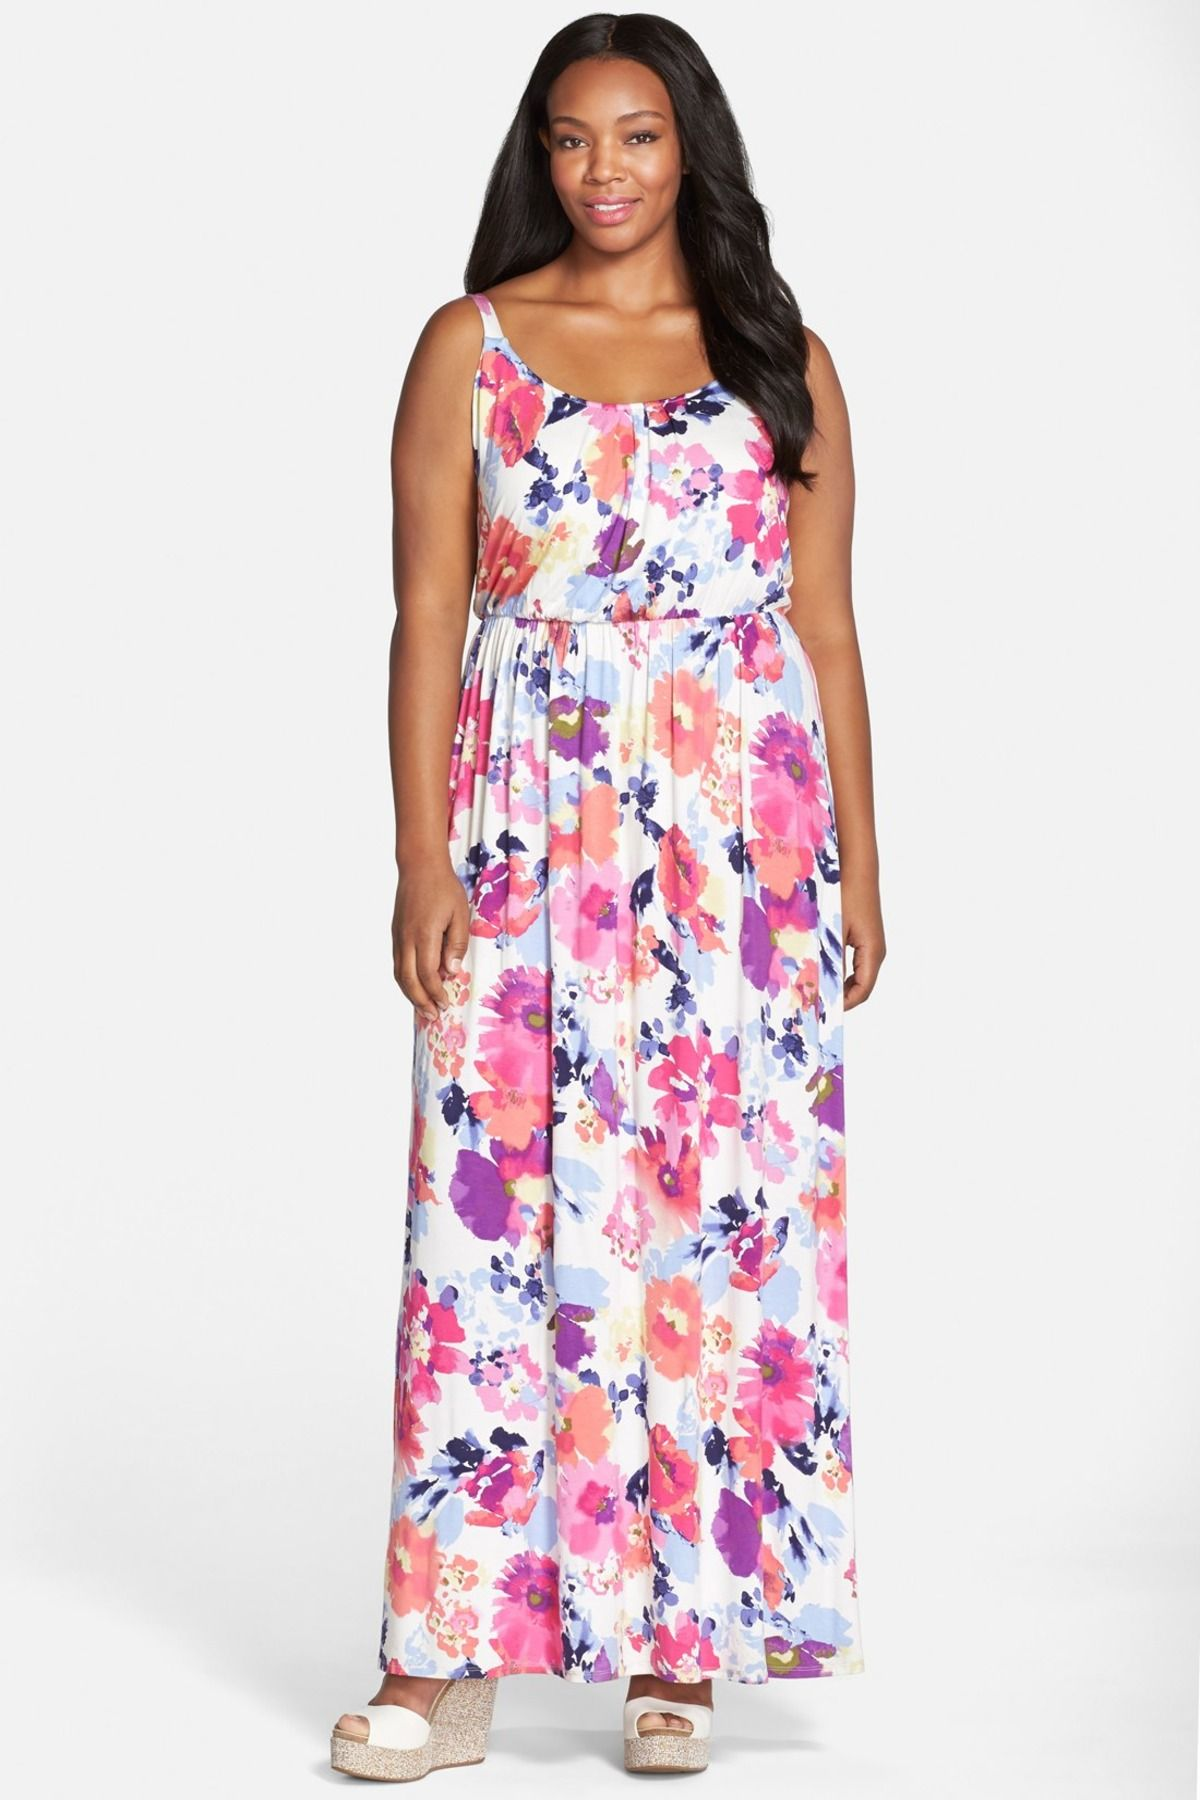 a2c84f80a1d Felicity and Coco - Print Blouson Maxi Dress (Plus Size) at Nordstrom Rack.  Free Shipping on orders over  100.